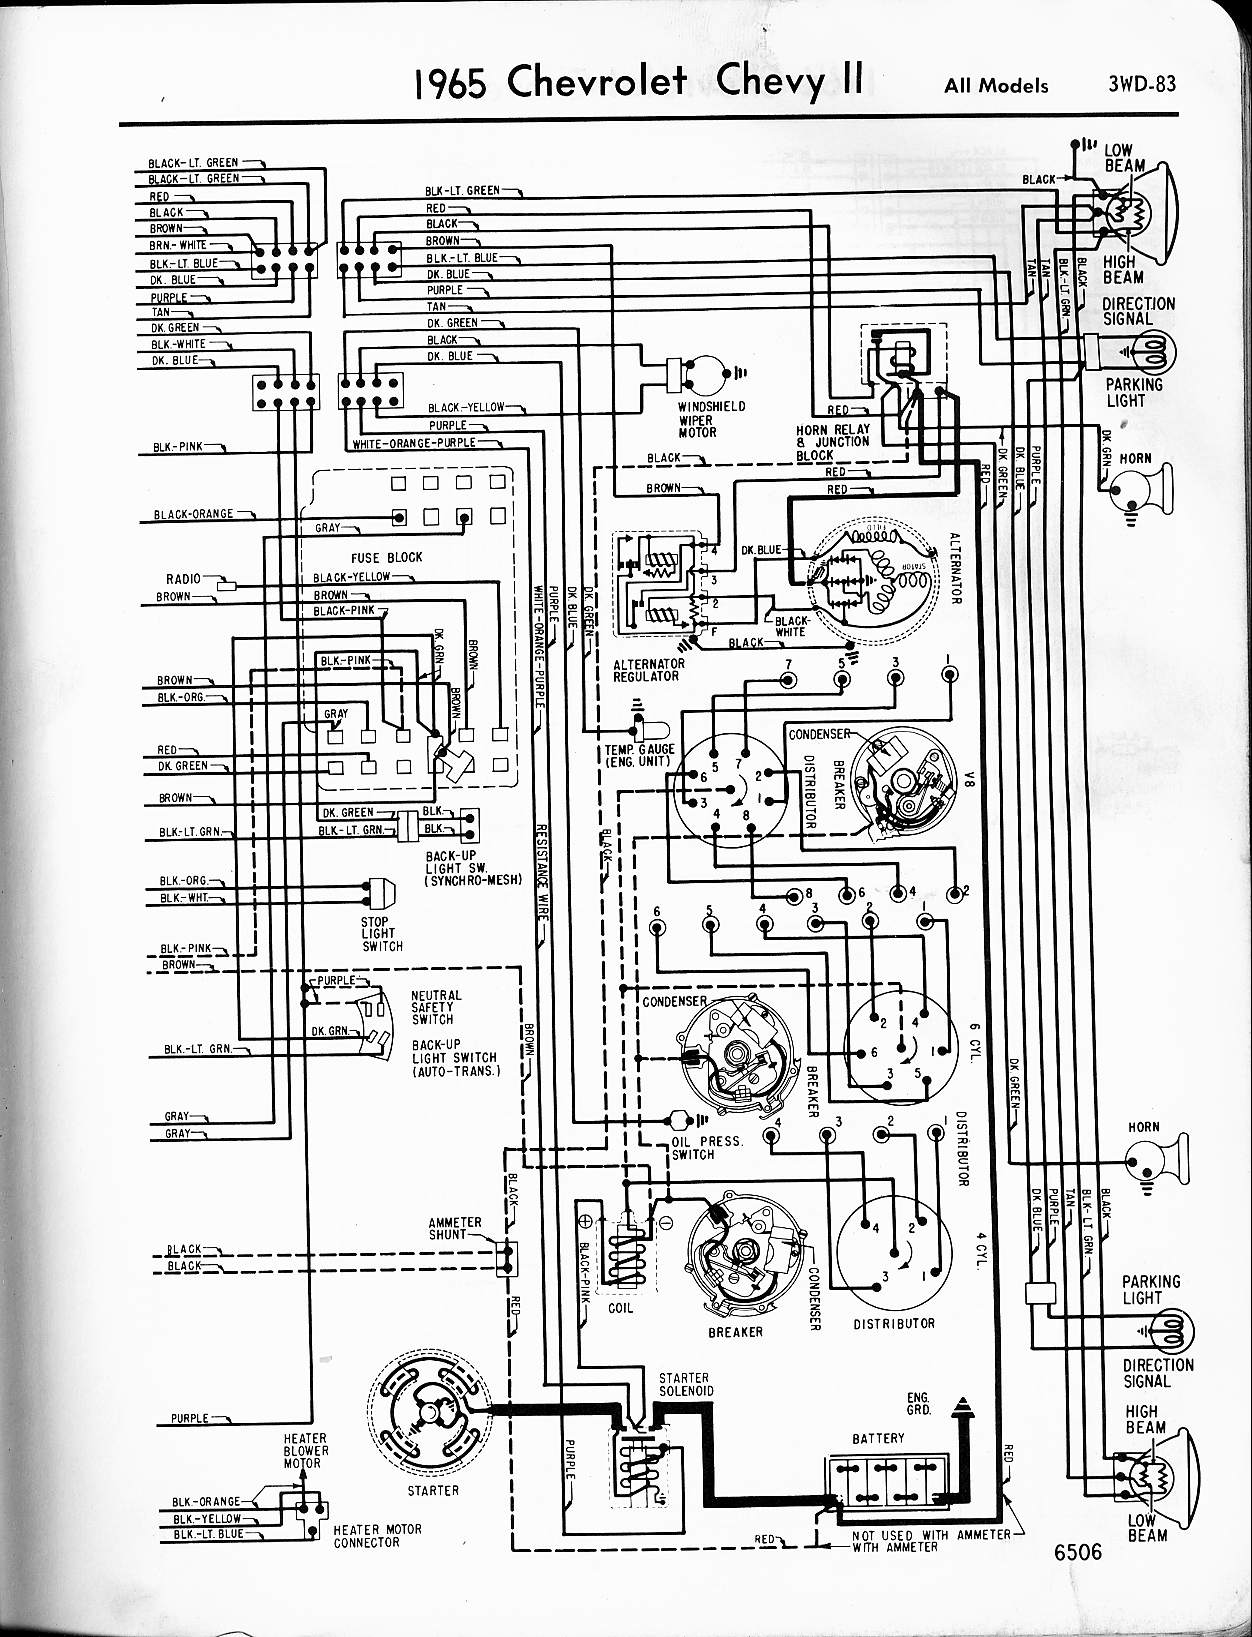 Chevy Malibu Turn Signal Wiring Diagram Library 2002 F350 1965 Ii Figure A B